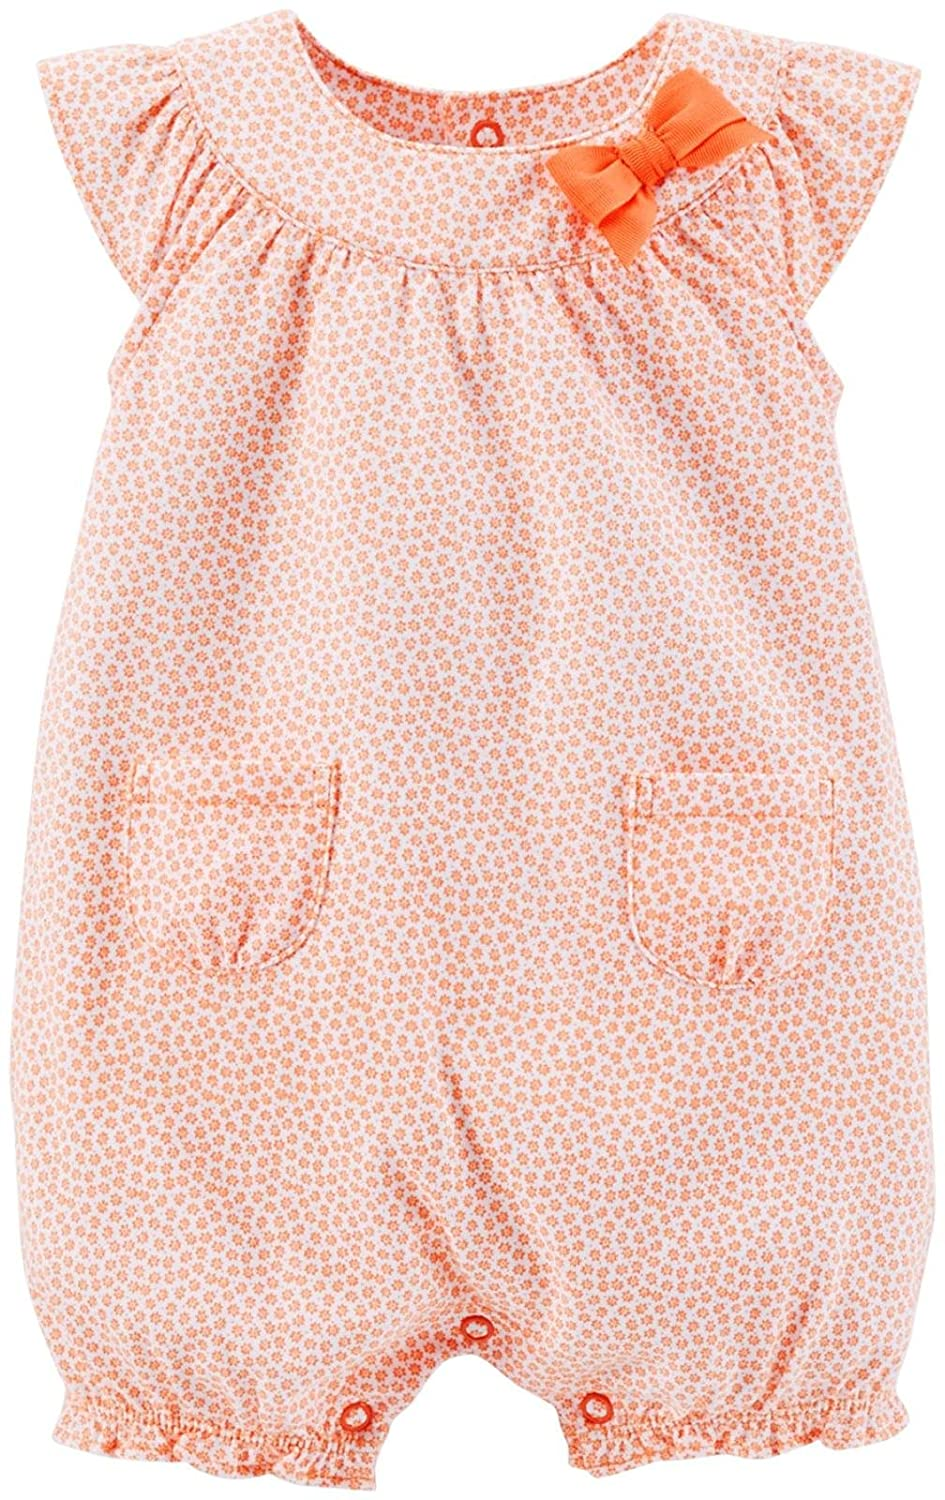 - Coral Carters Baby Girls Print Bubble Romper Baby 3 Months